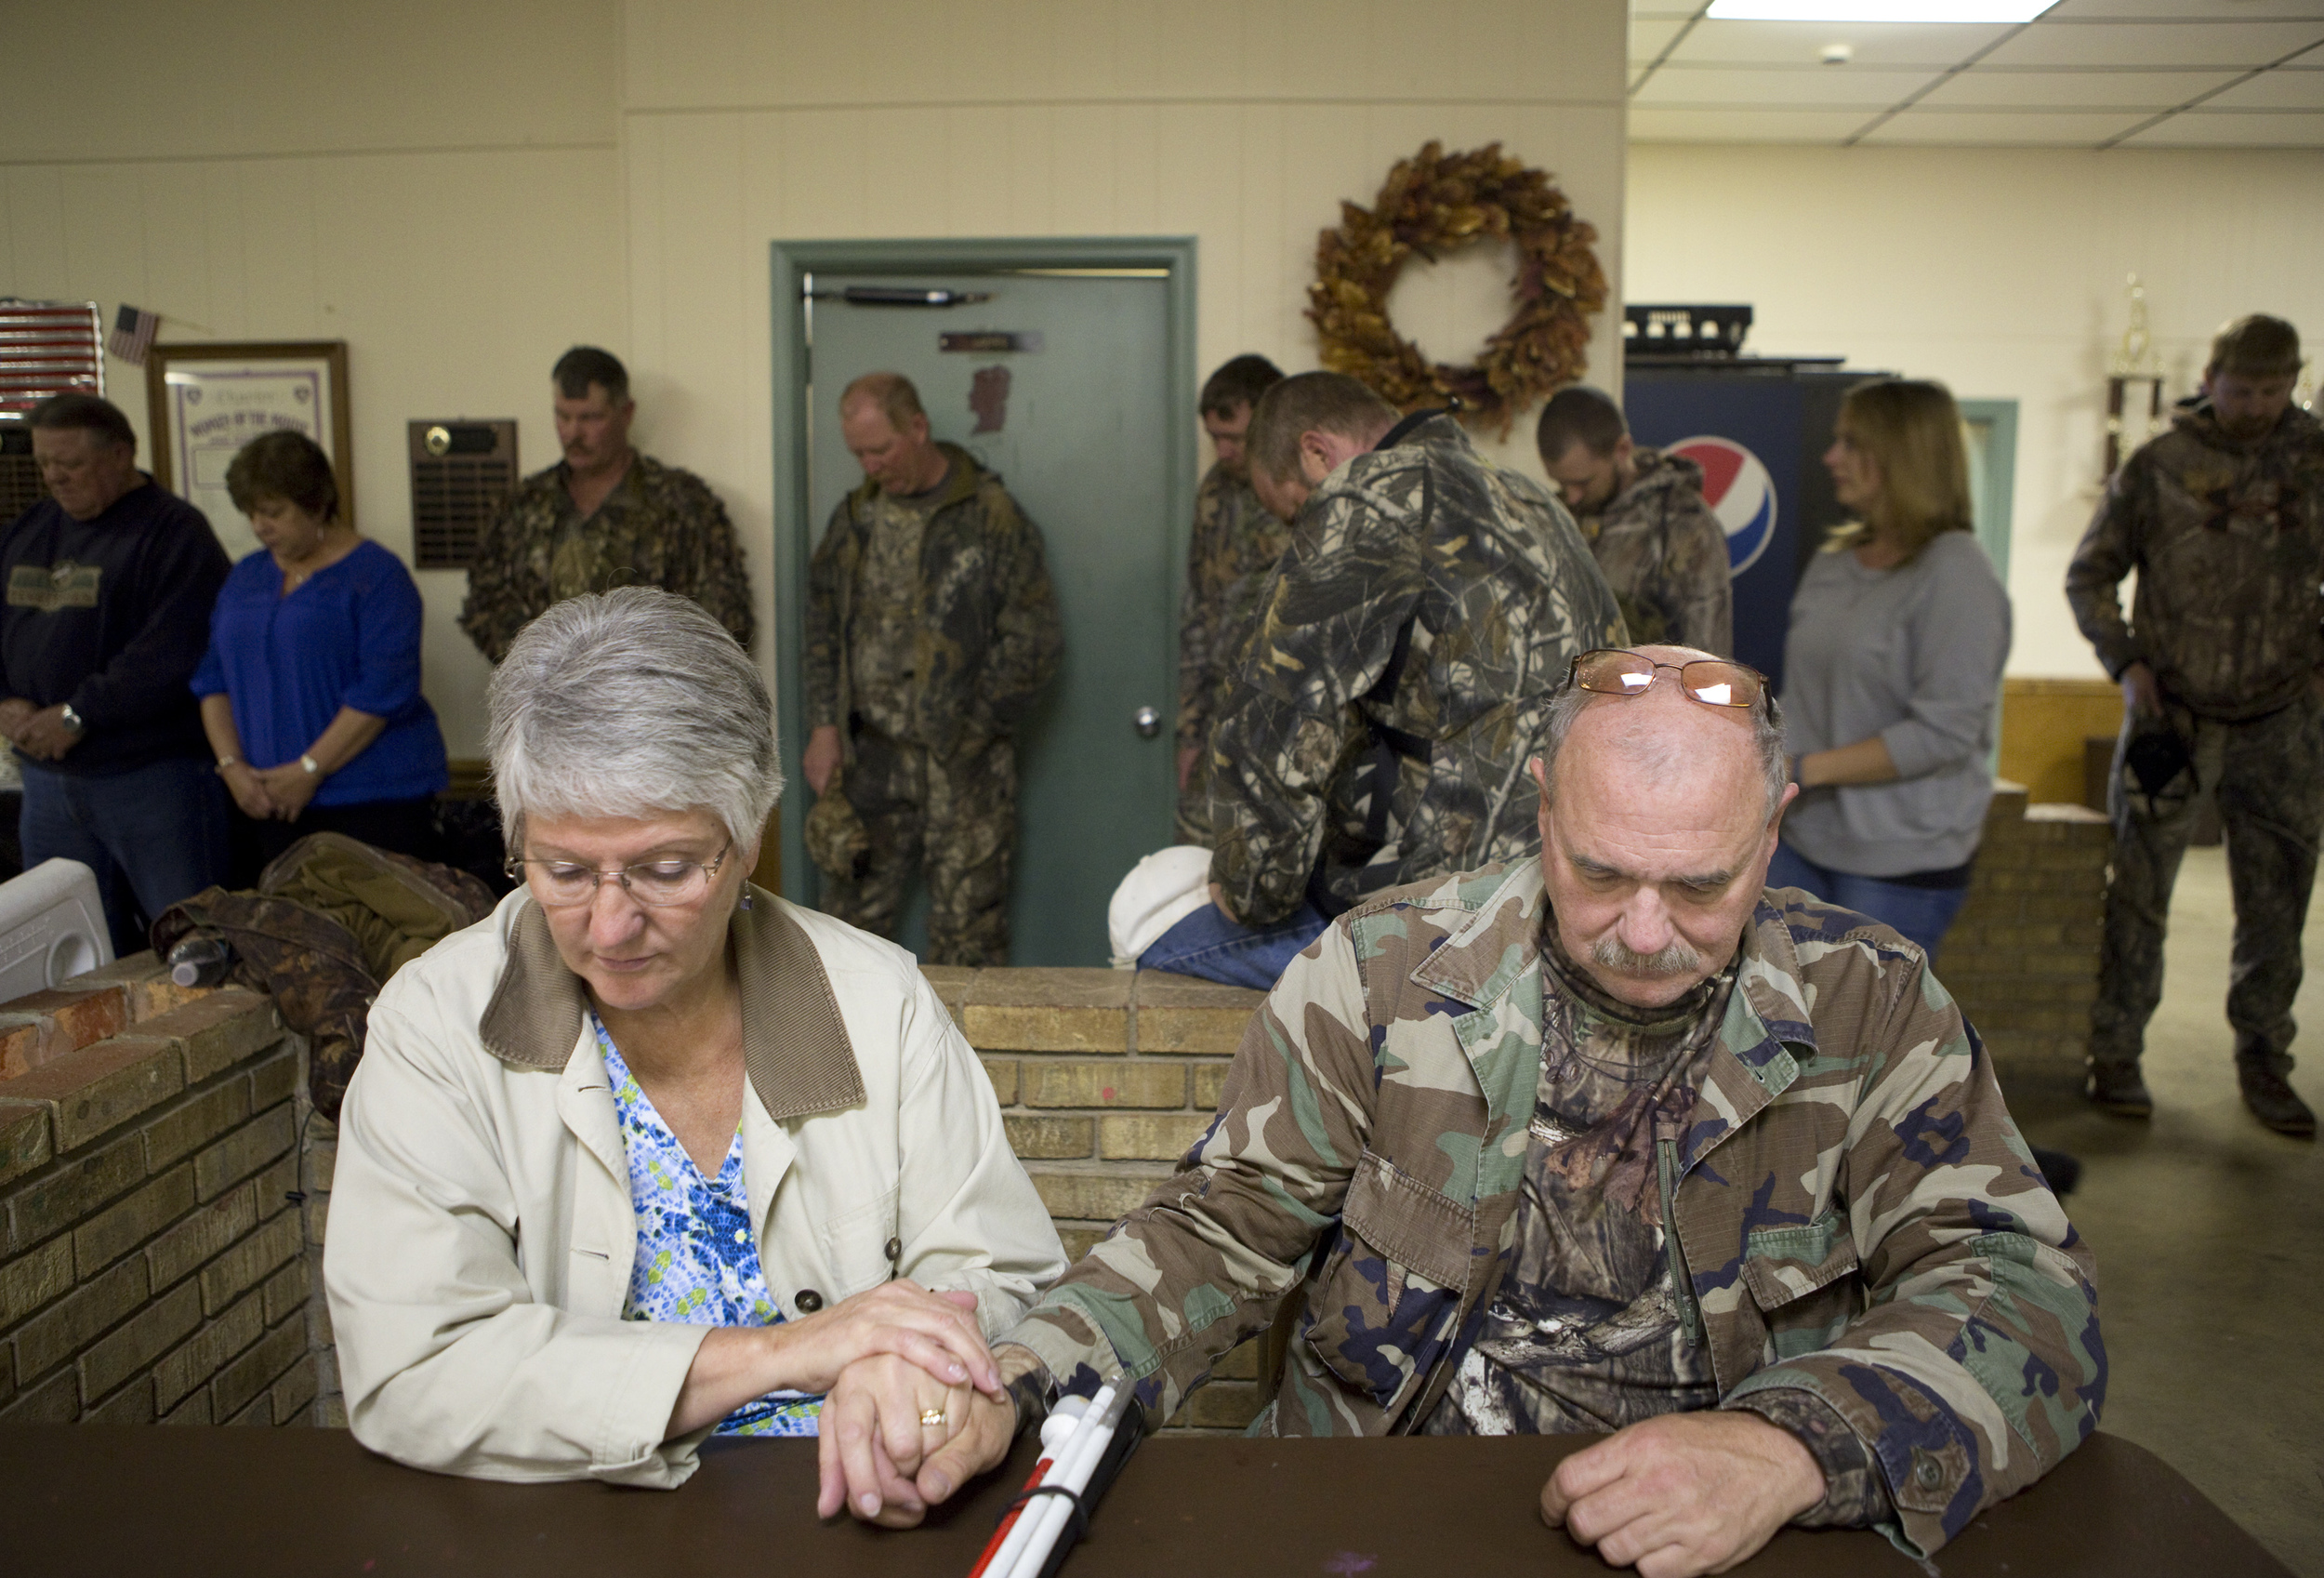 Terry Doyle, left, holds Mike's hands during prayer for the after-hunt meal. Hunters reconvened at the Moose Lodge in Bedford to fill their stomachs and also received awards and prizes for their efforts. The Doyles stayed at the Days Inn in Bedford the night before. Terry stayed behind at the hotel to catch up on a few more hours of sleep after driving Mike there.